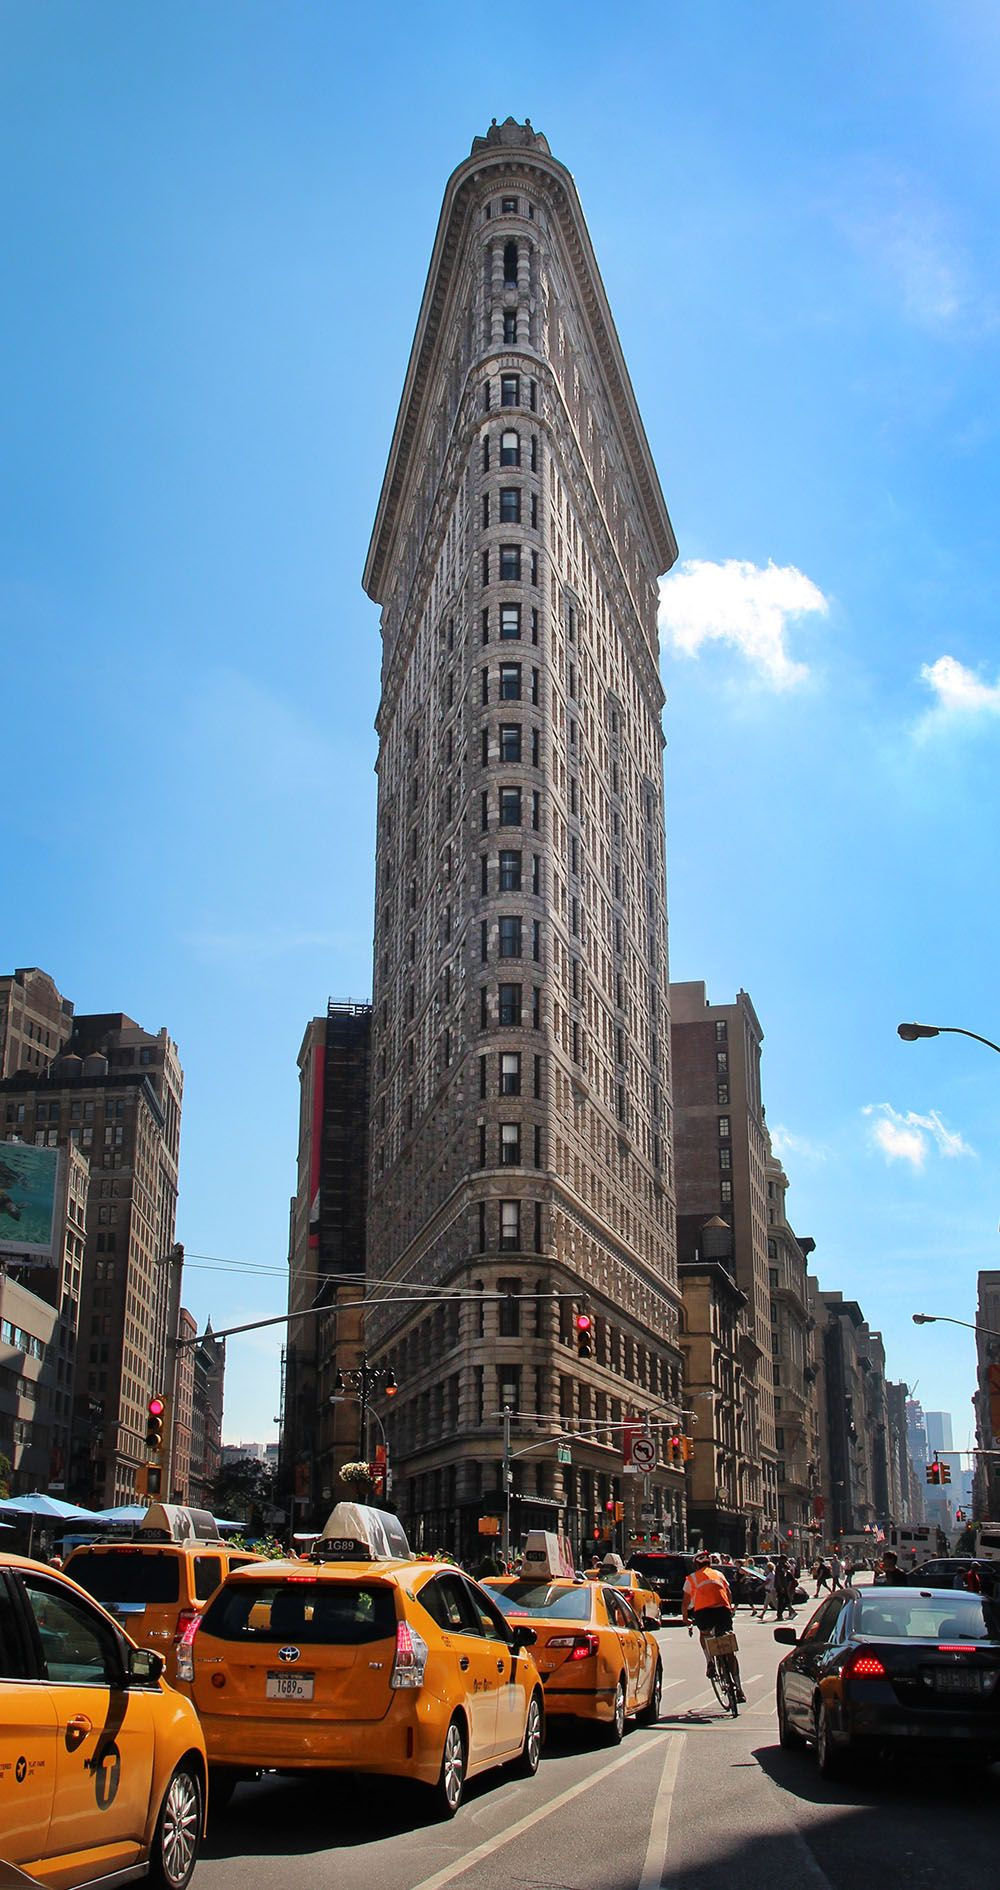 Flatiron Building, New York City / Find travel tips for NYC at A Globe Well Travelled